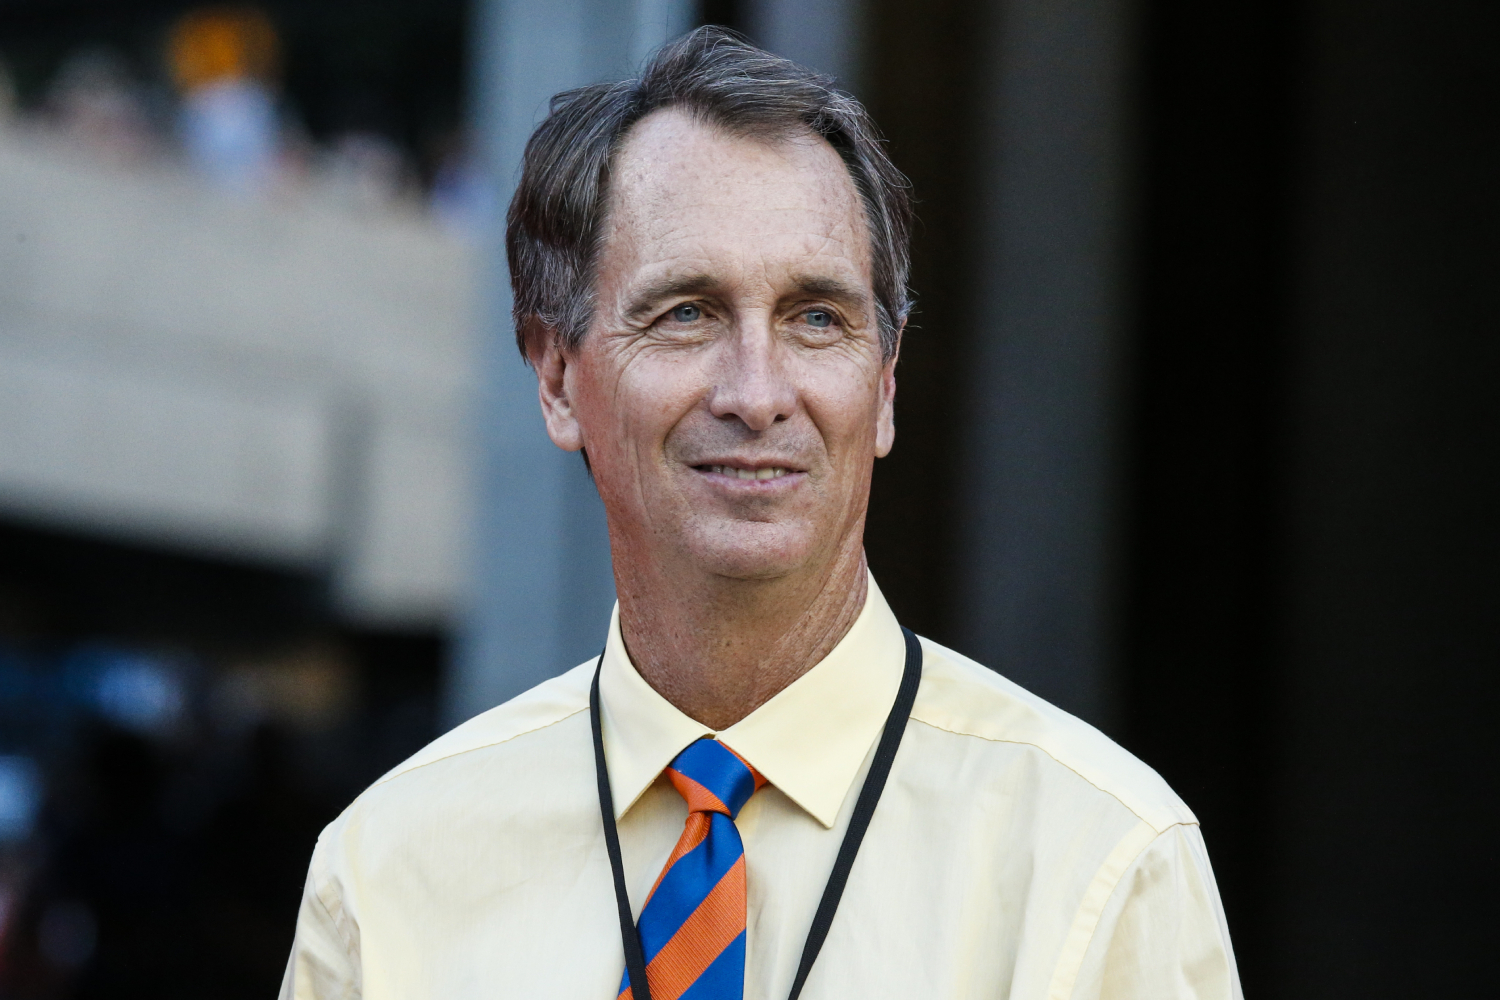 Cris Collinsworth typically gives insightful analysis on NBC. Recently, though, he made some bold comments about the Cincinnati Bengals.